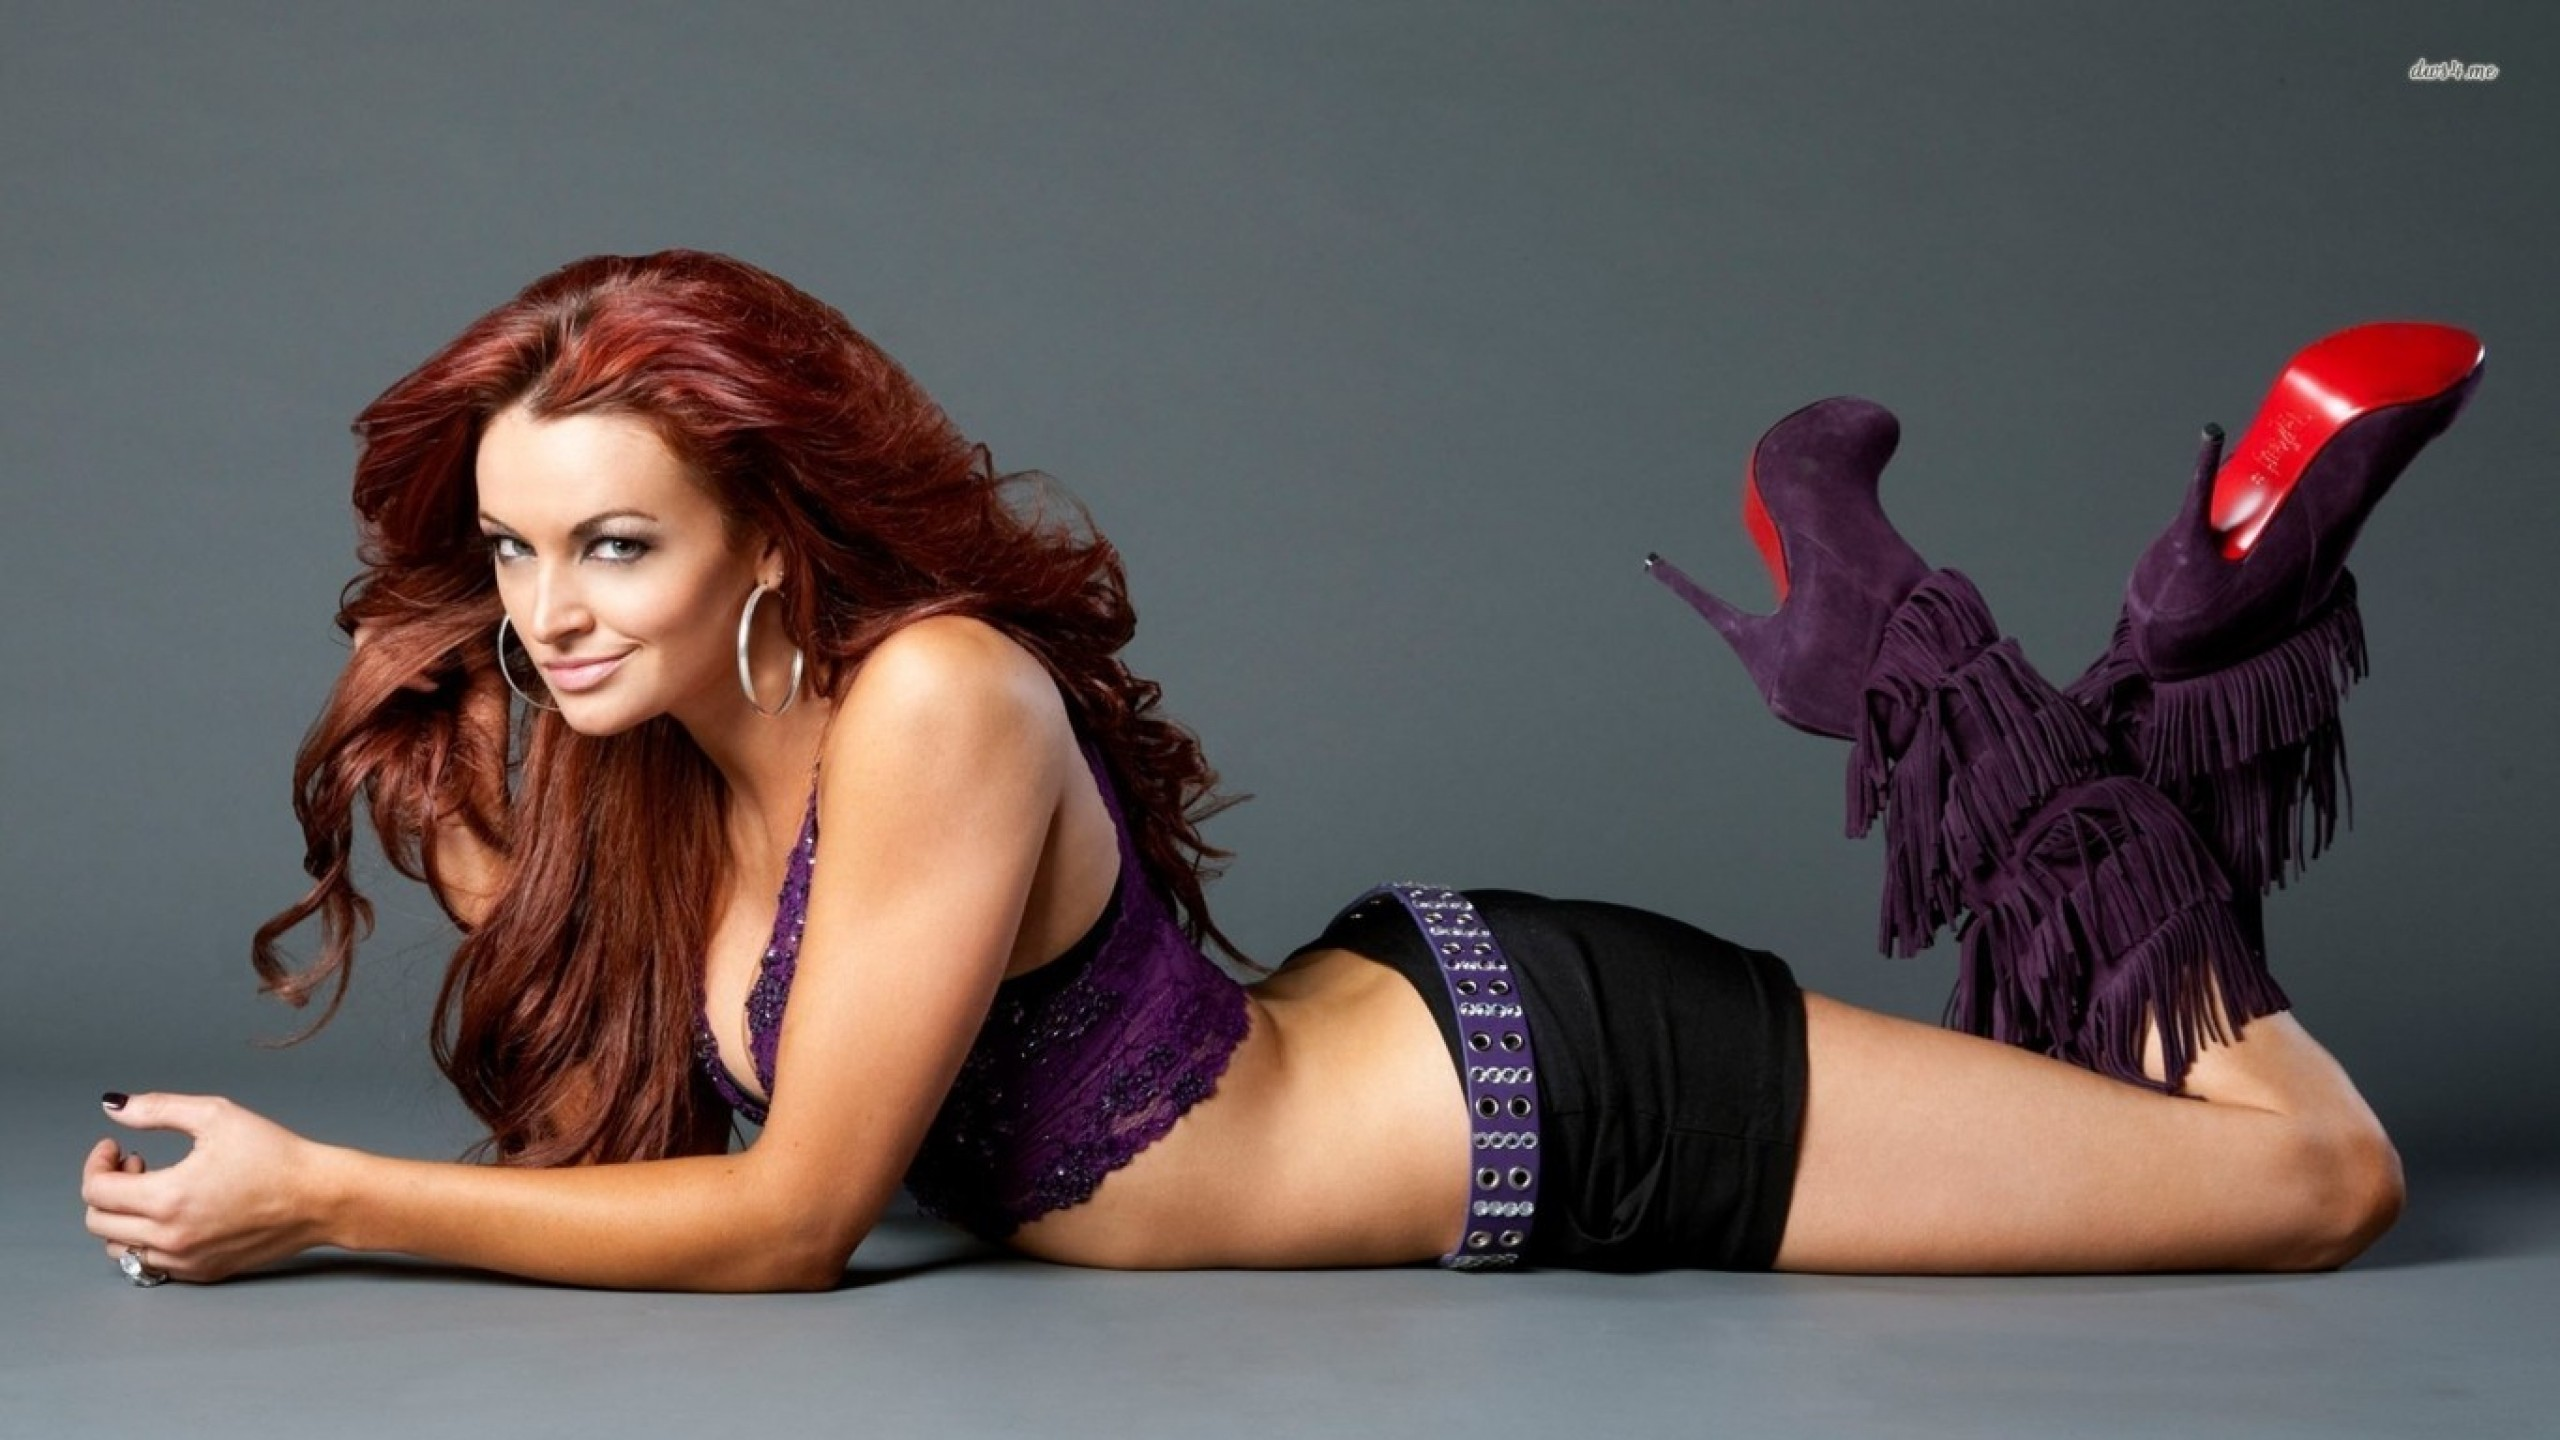 2560x1440 - Maria Kanellis Wallpapers 5